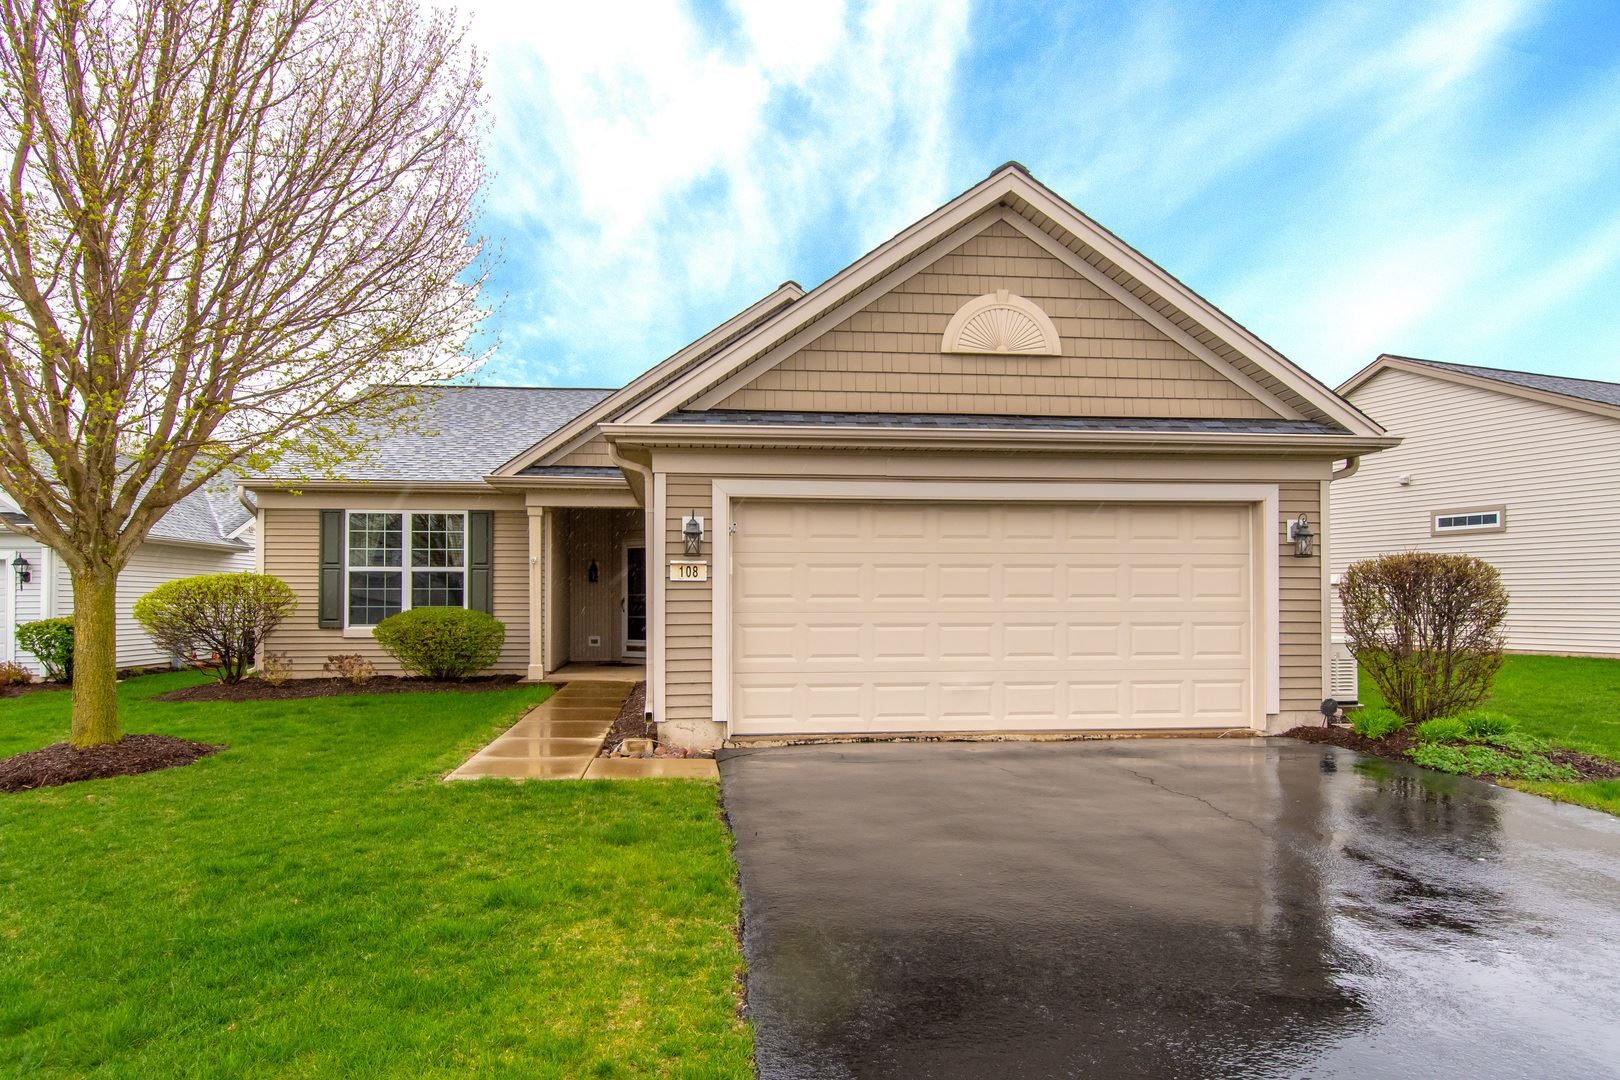 Photo of 108 National Court, Shorewood, IL 60404 (MLS # 11060947)